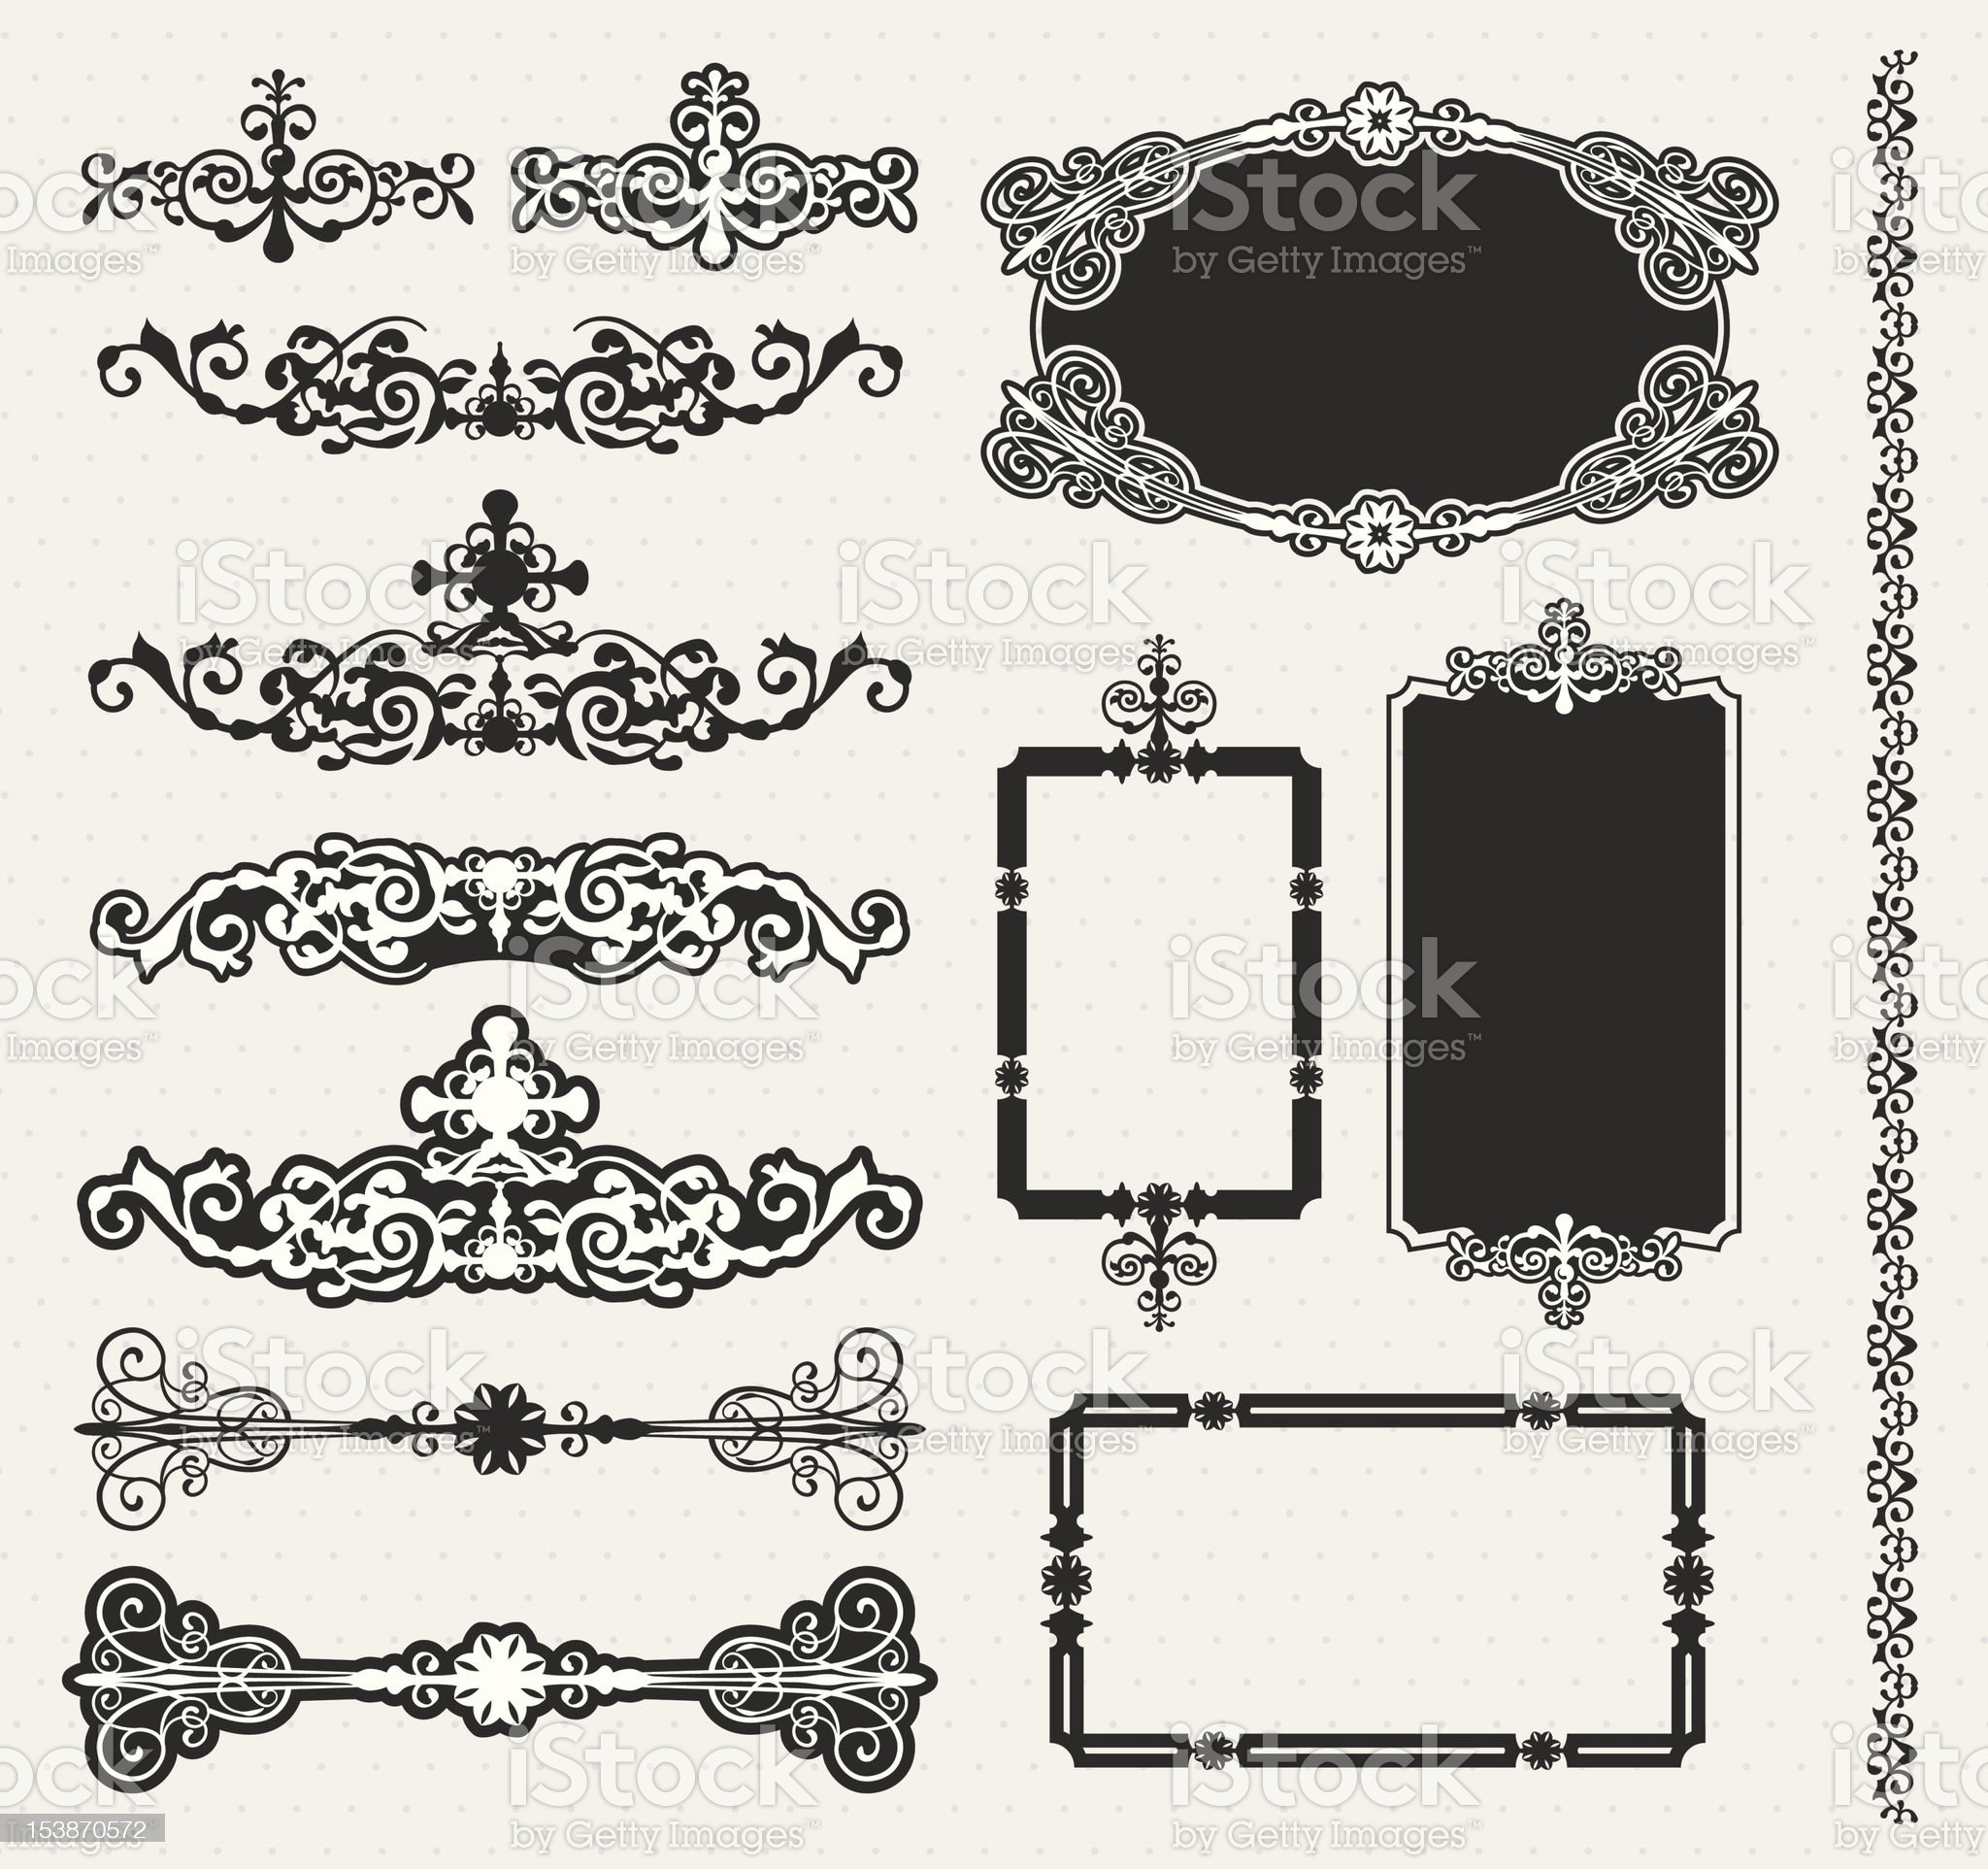 Decorative vector scroll and floral frame set royalty-free stock vector art